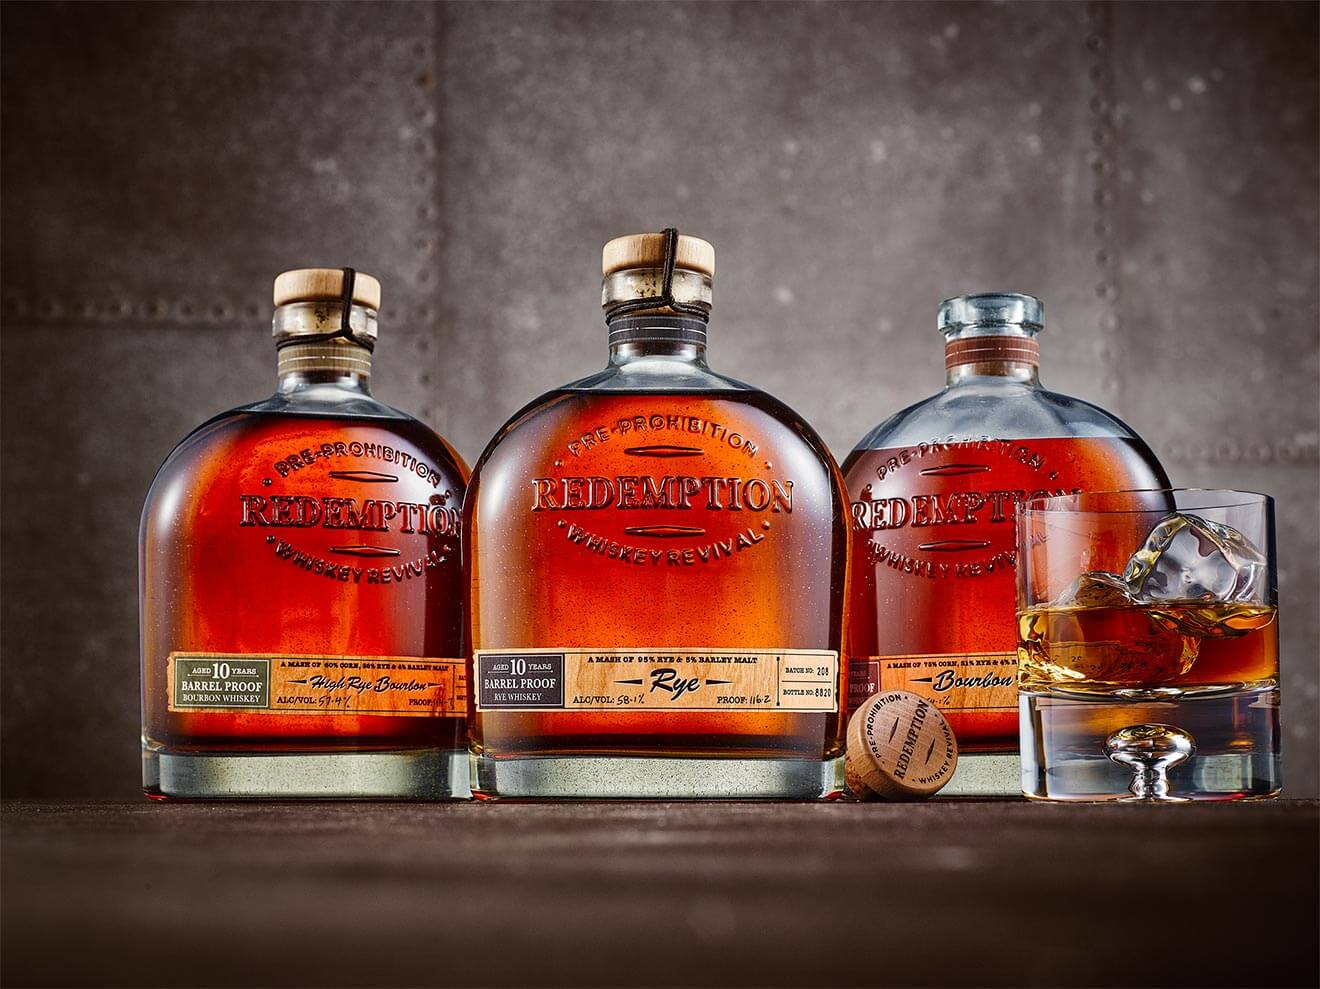 Redemption Whiskey Limited-Edition Aged Barrel Proof Selections, bottles and rocks glass